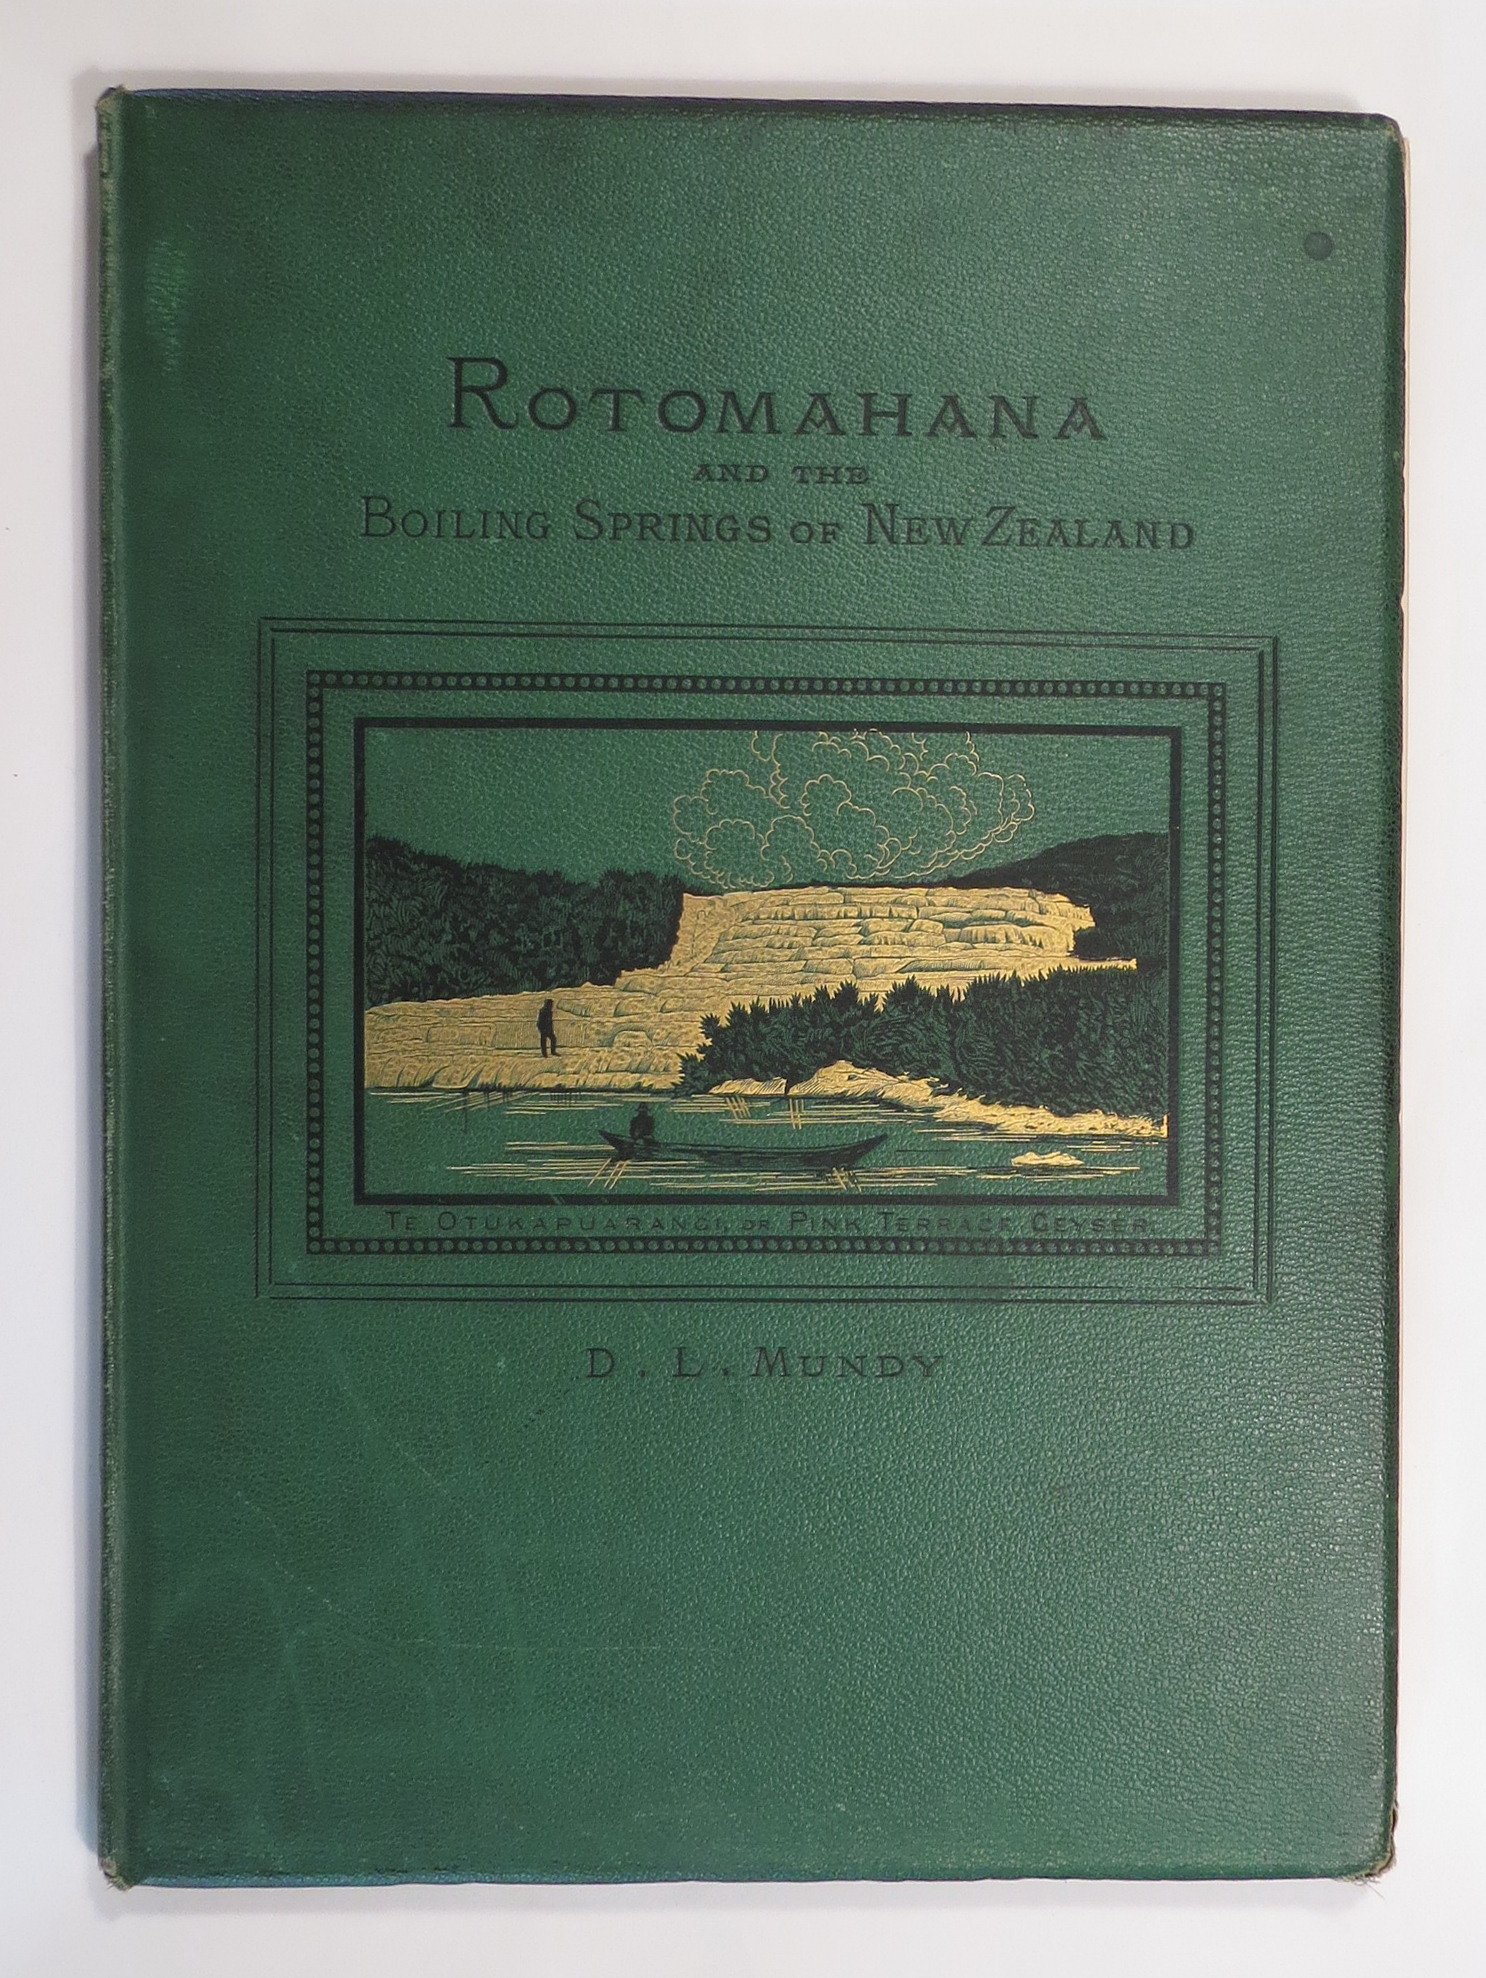 Image for Rotomahana; and the Boiling Springs of New Zealand. A Photographic Series of Sixteen Views By D. L. Mundy. With Descriptive Notes by Ferdinand von Hochstetter, Professor of the Polytechnic Institution of Vienna